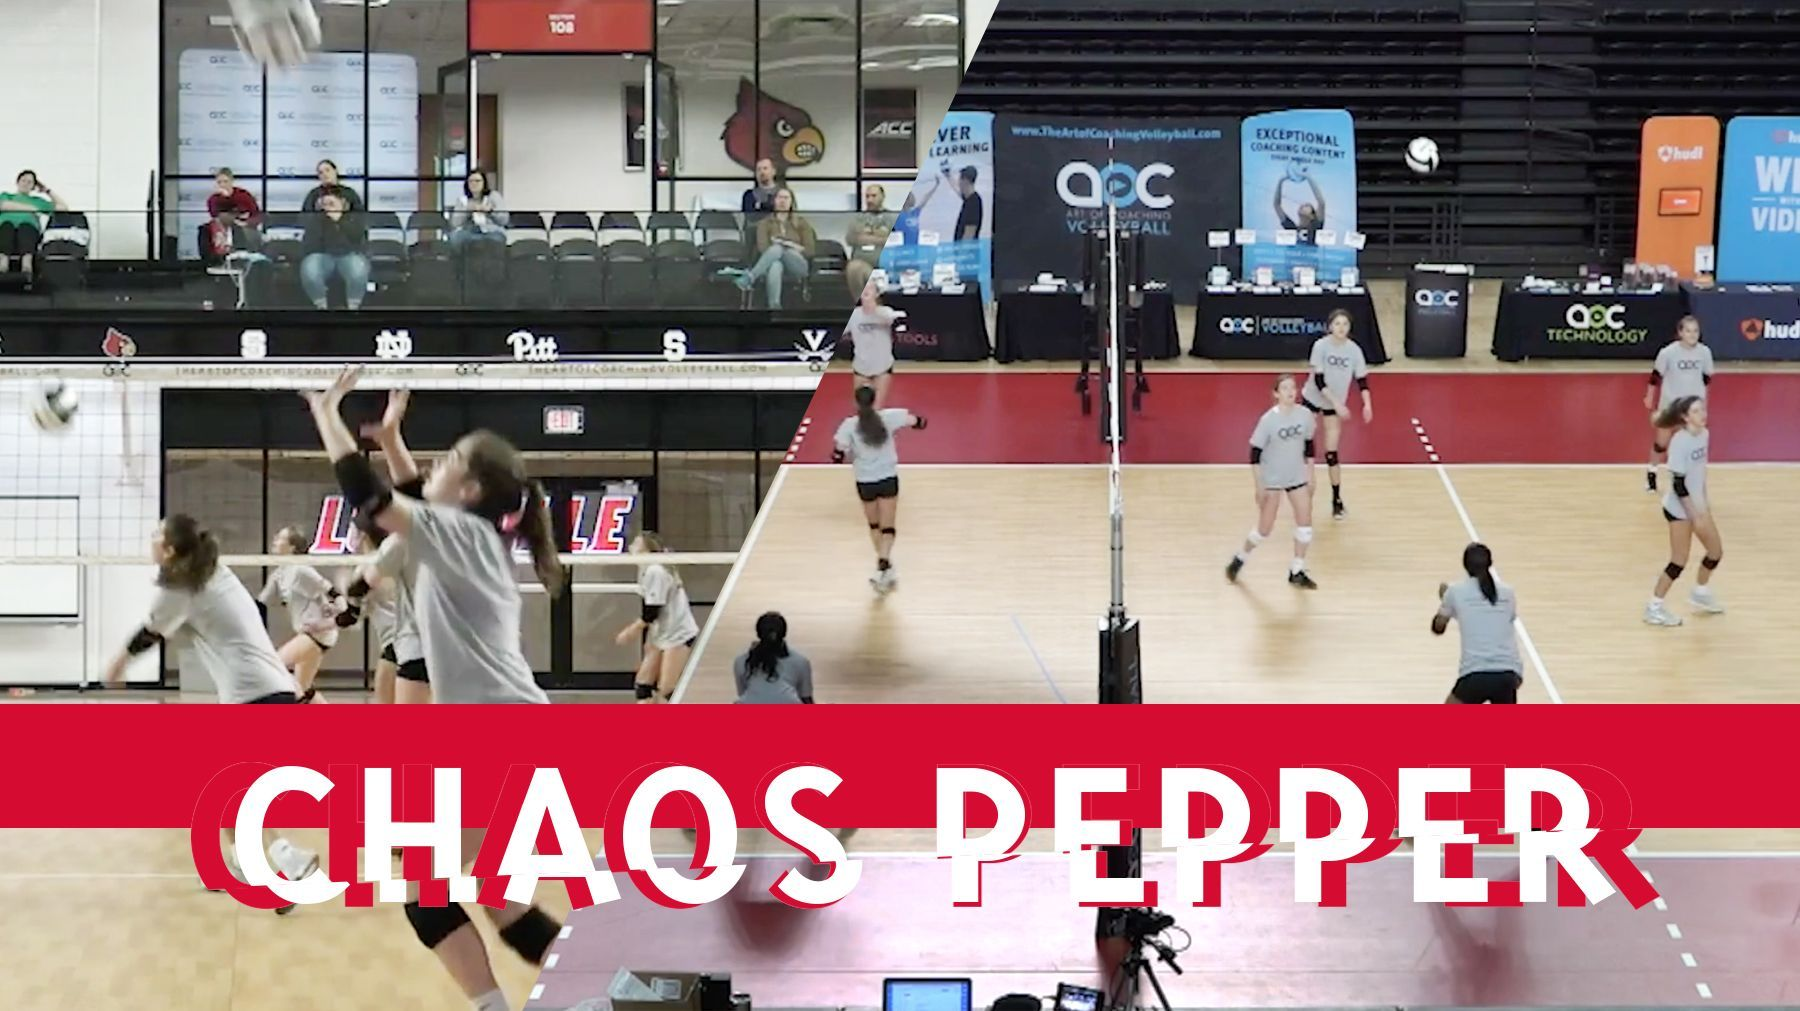 Small Group Drill Chaos Pepper The Art Of Coaching Volleyball Coaching Volleyball Volleyball Drill